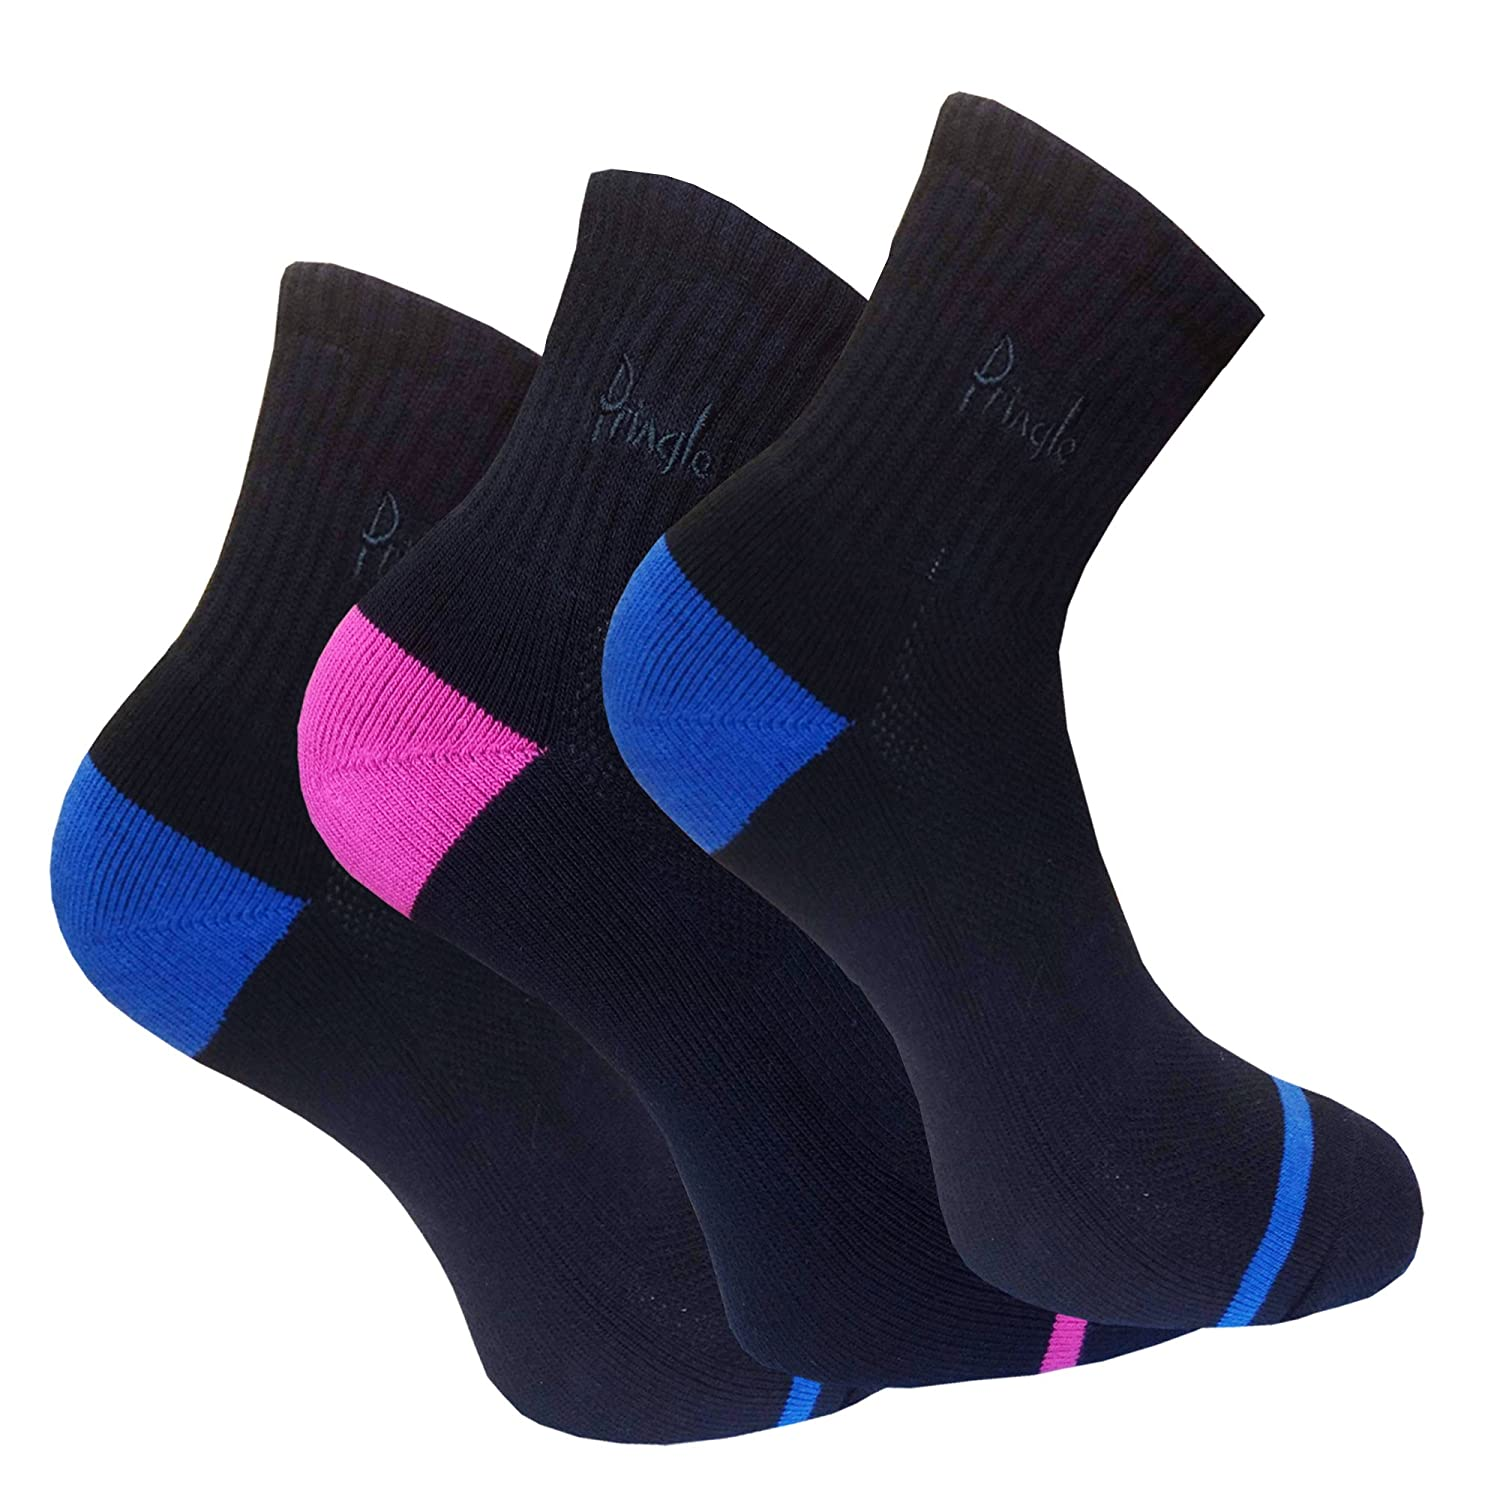 3 Pair Pack UK 4-8 Cotton Rich Pringle Women/'s  Black Socks